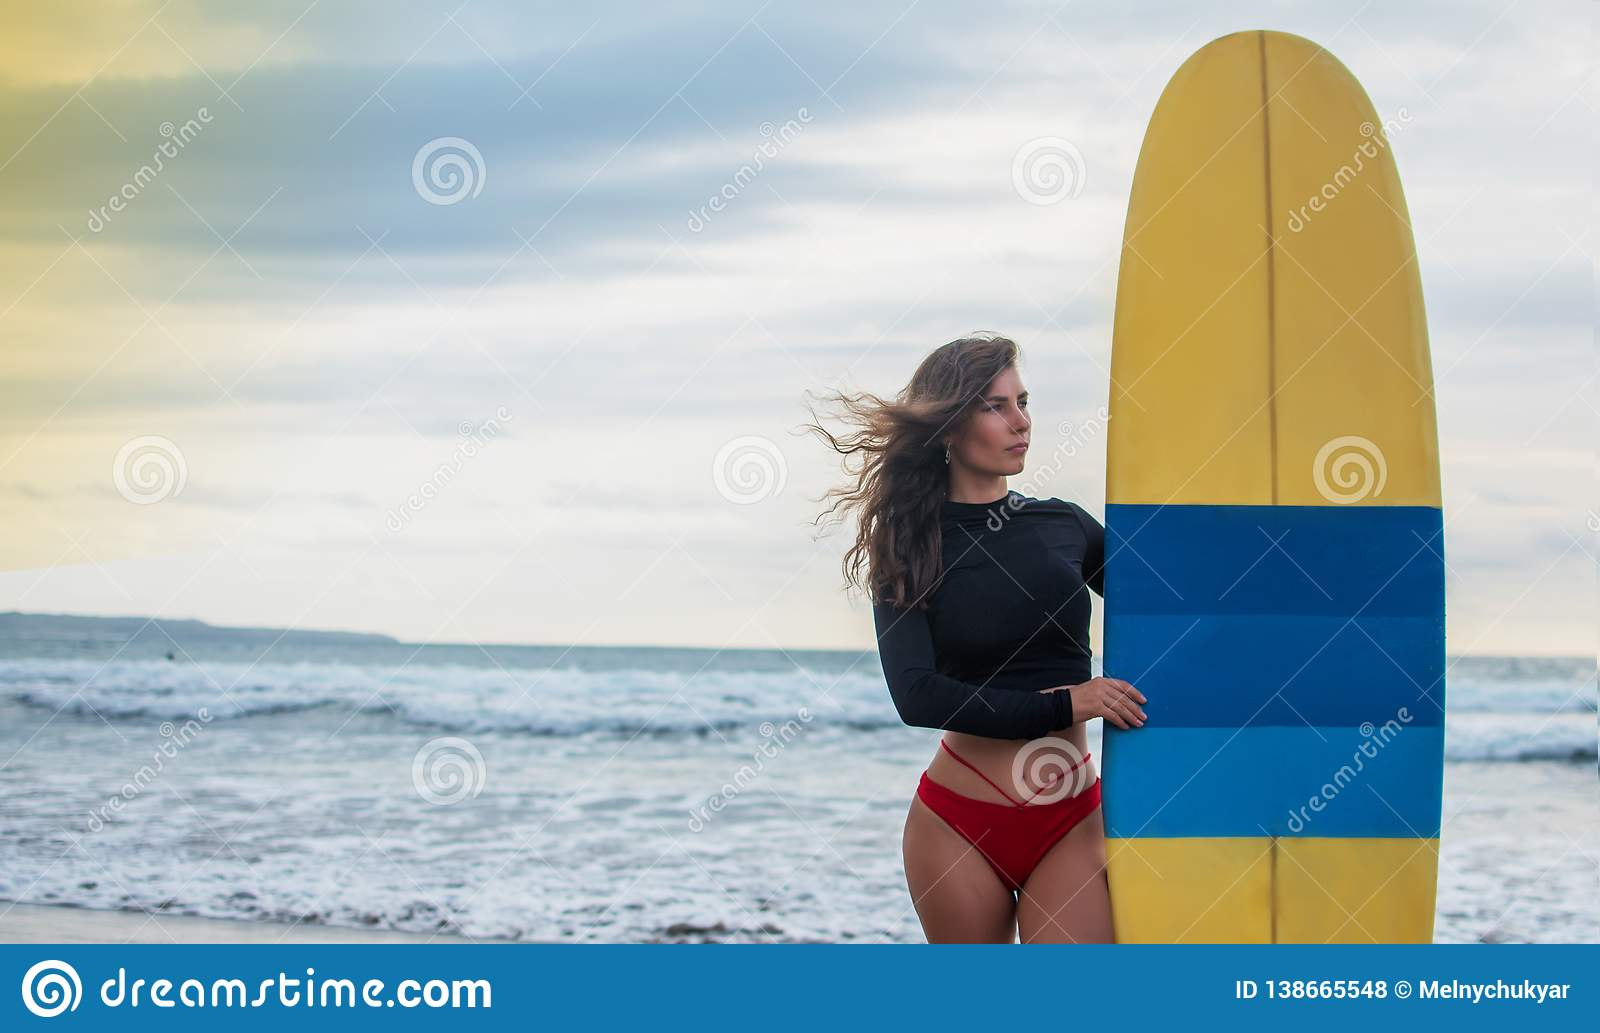 Surfer woman going surfing standing with blue-yellow surfboard on Waikiki Beach. Female bikini girl walking with surfboard living